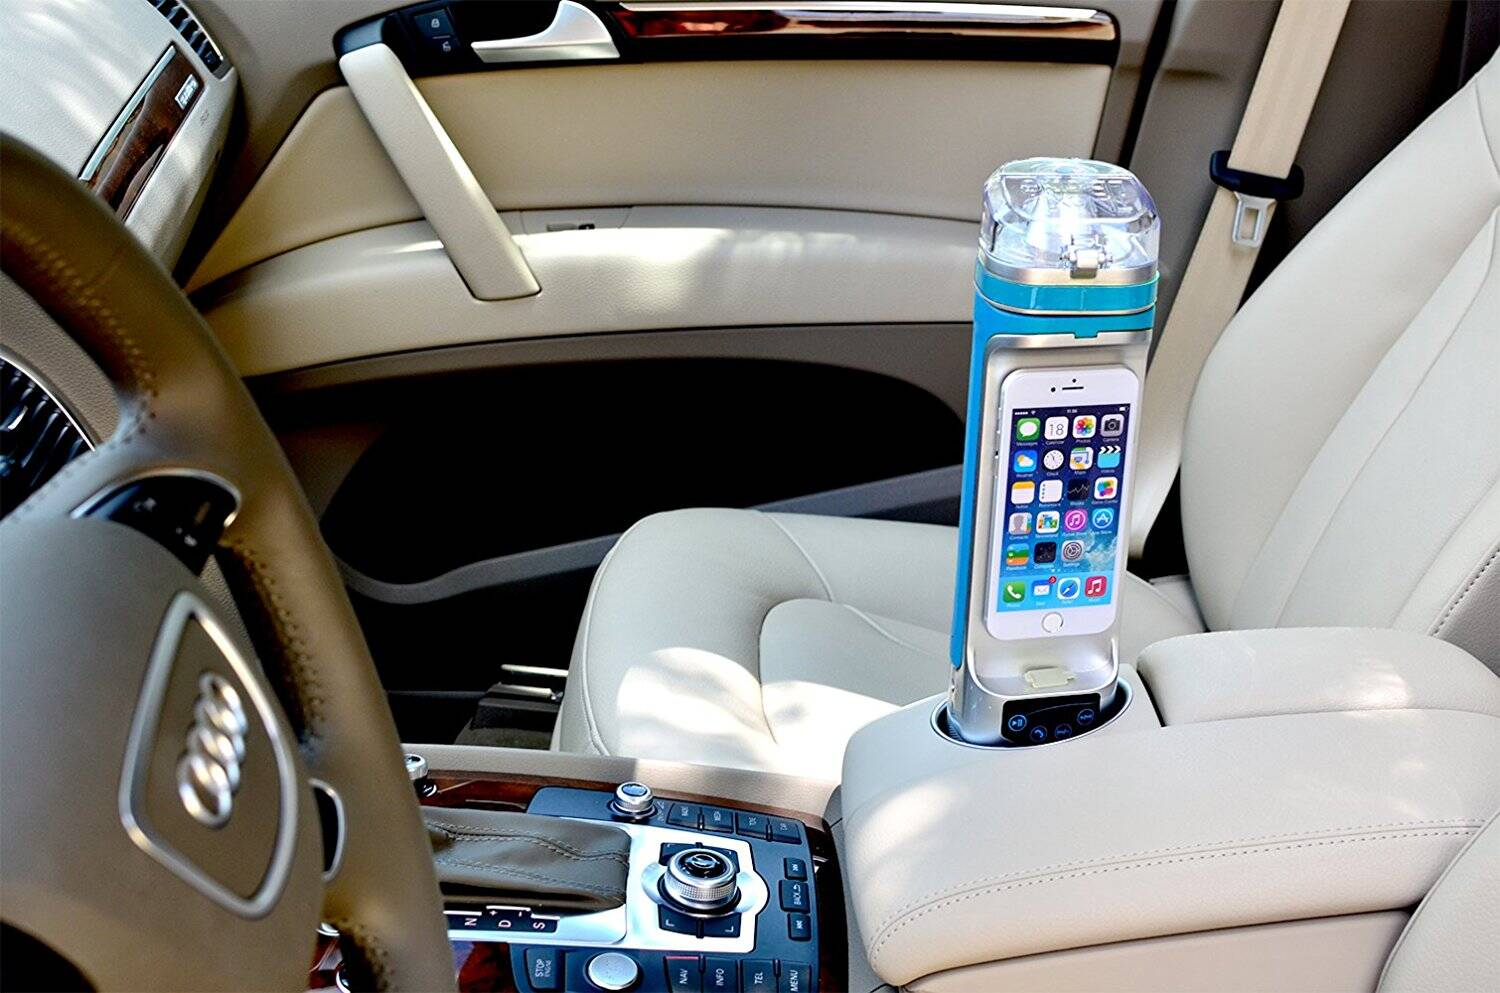 All-in-One Phone Bottle - Bluetooth Speaker, Power Bank, Phone Dock - http://coolthings.us